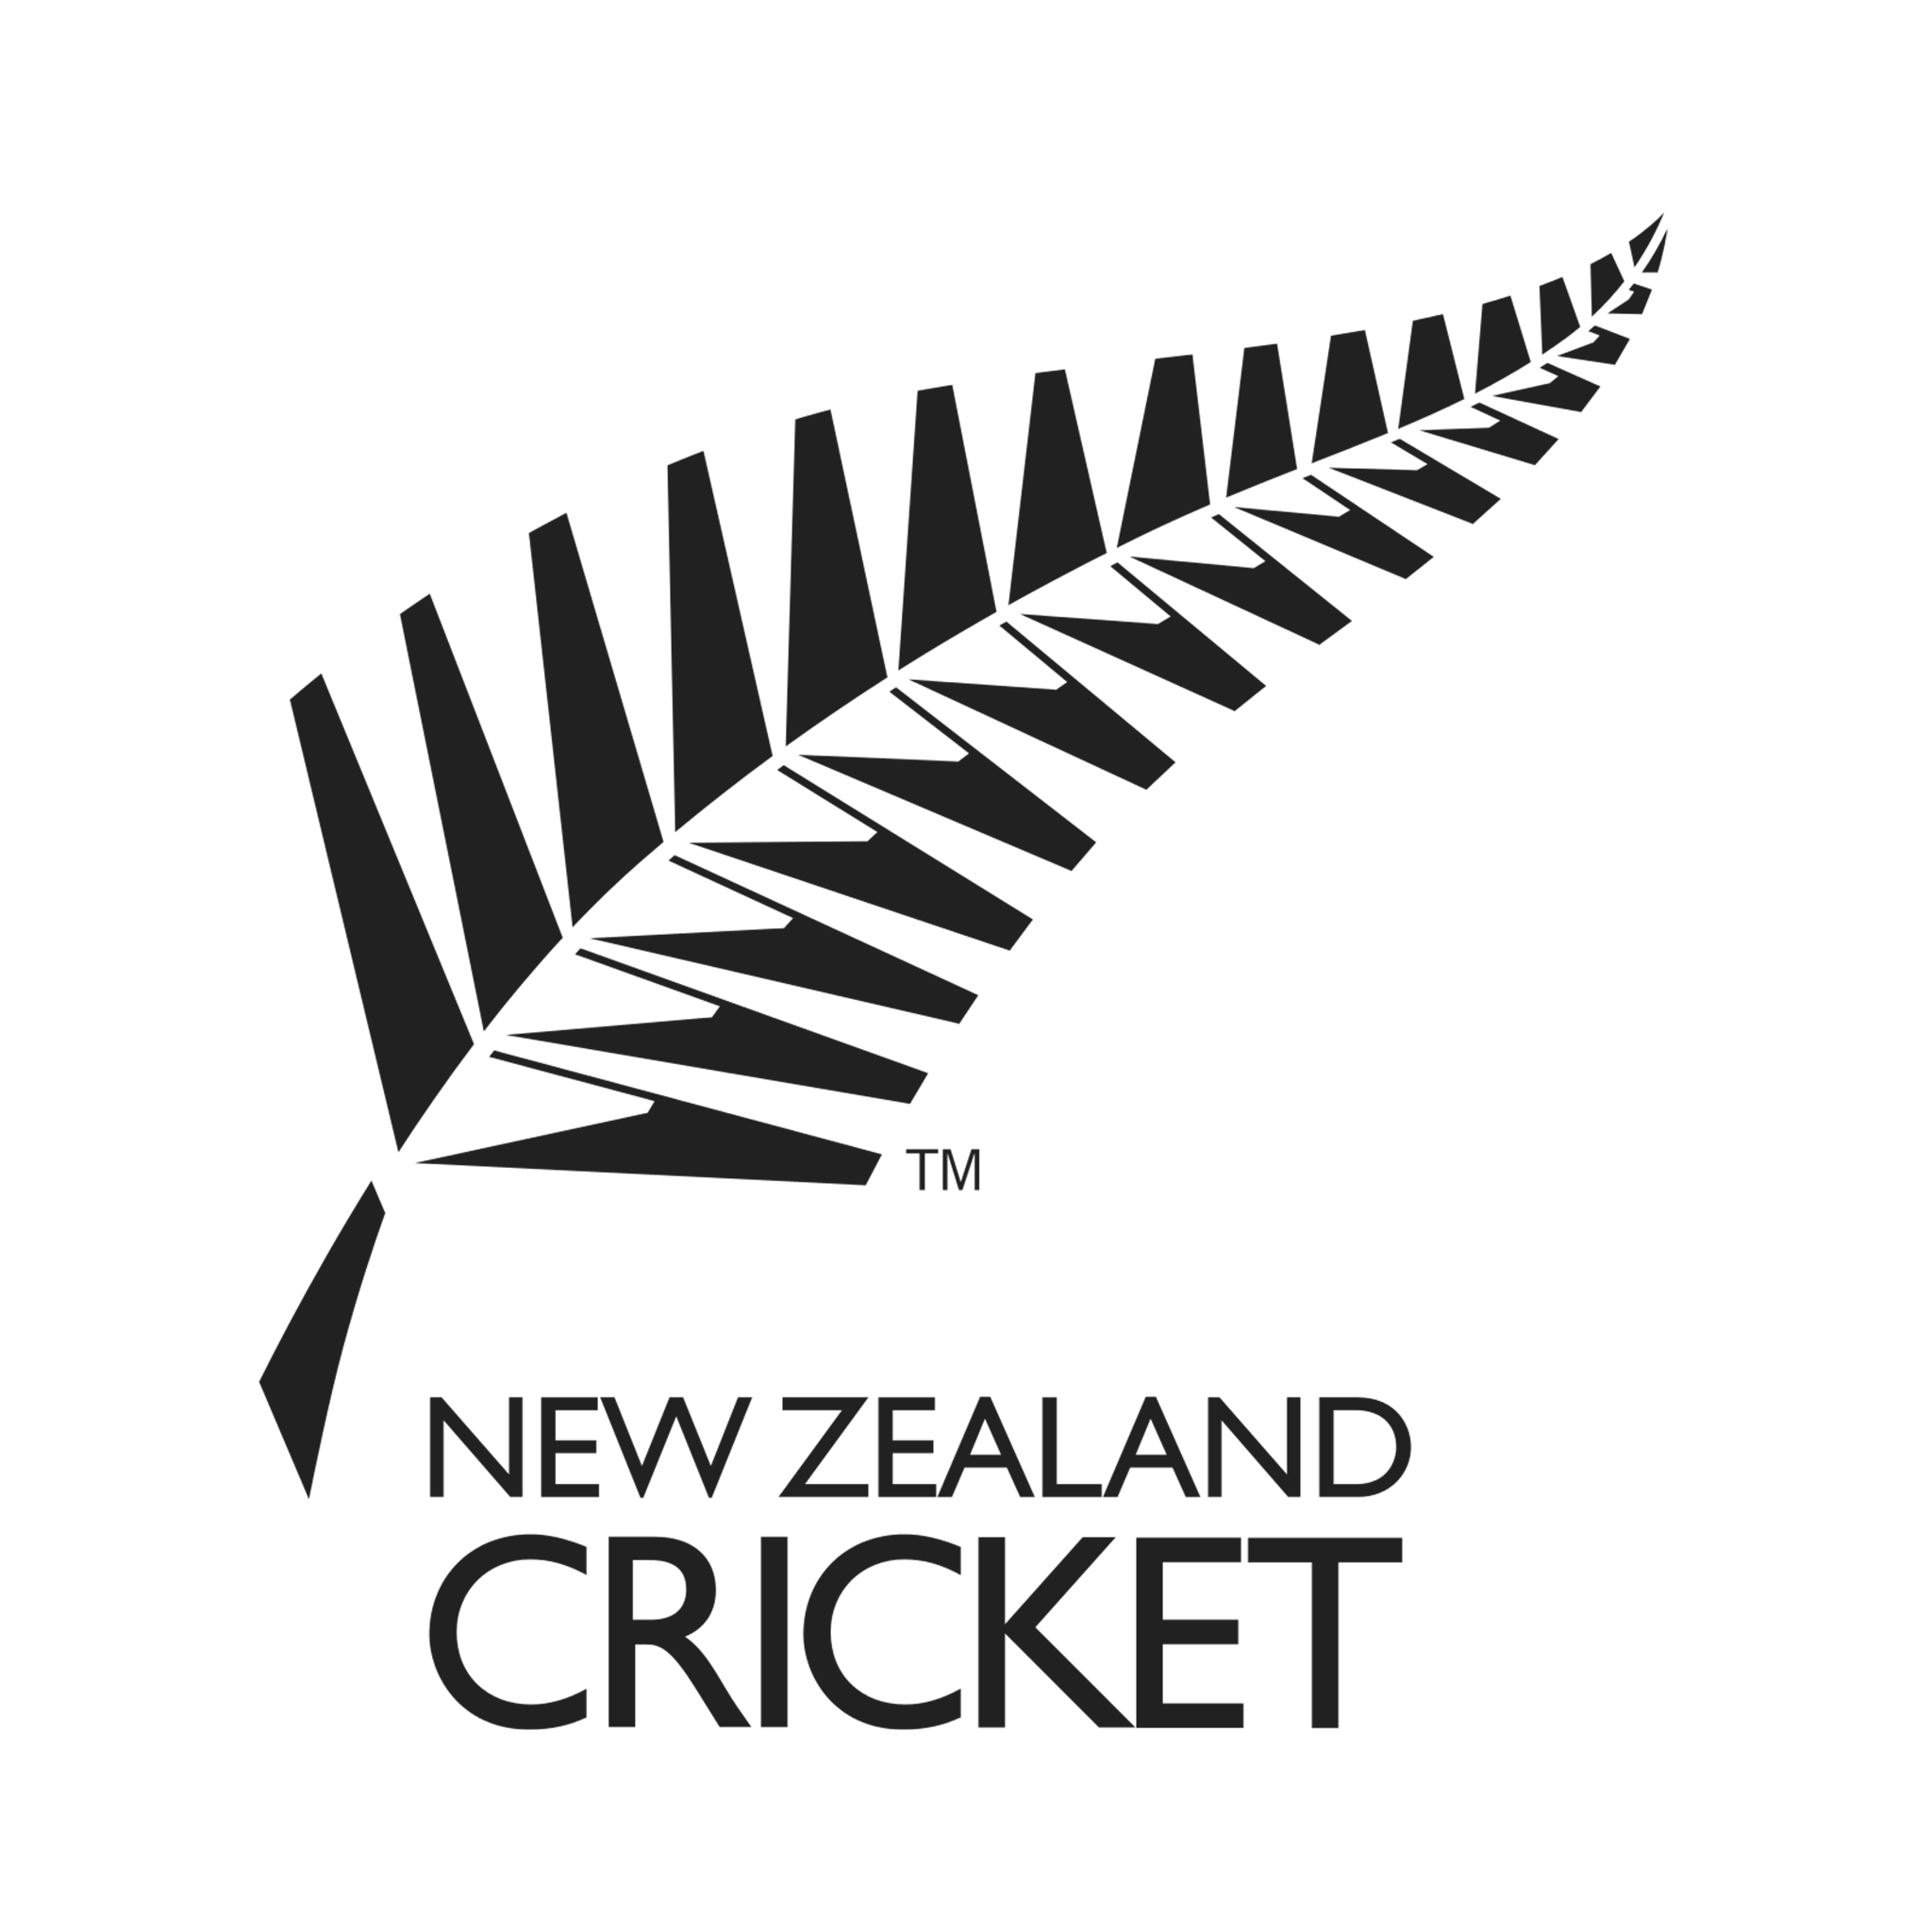 ICC Cricket World Cup 2019 New Zealand Team Squad